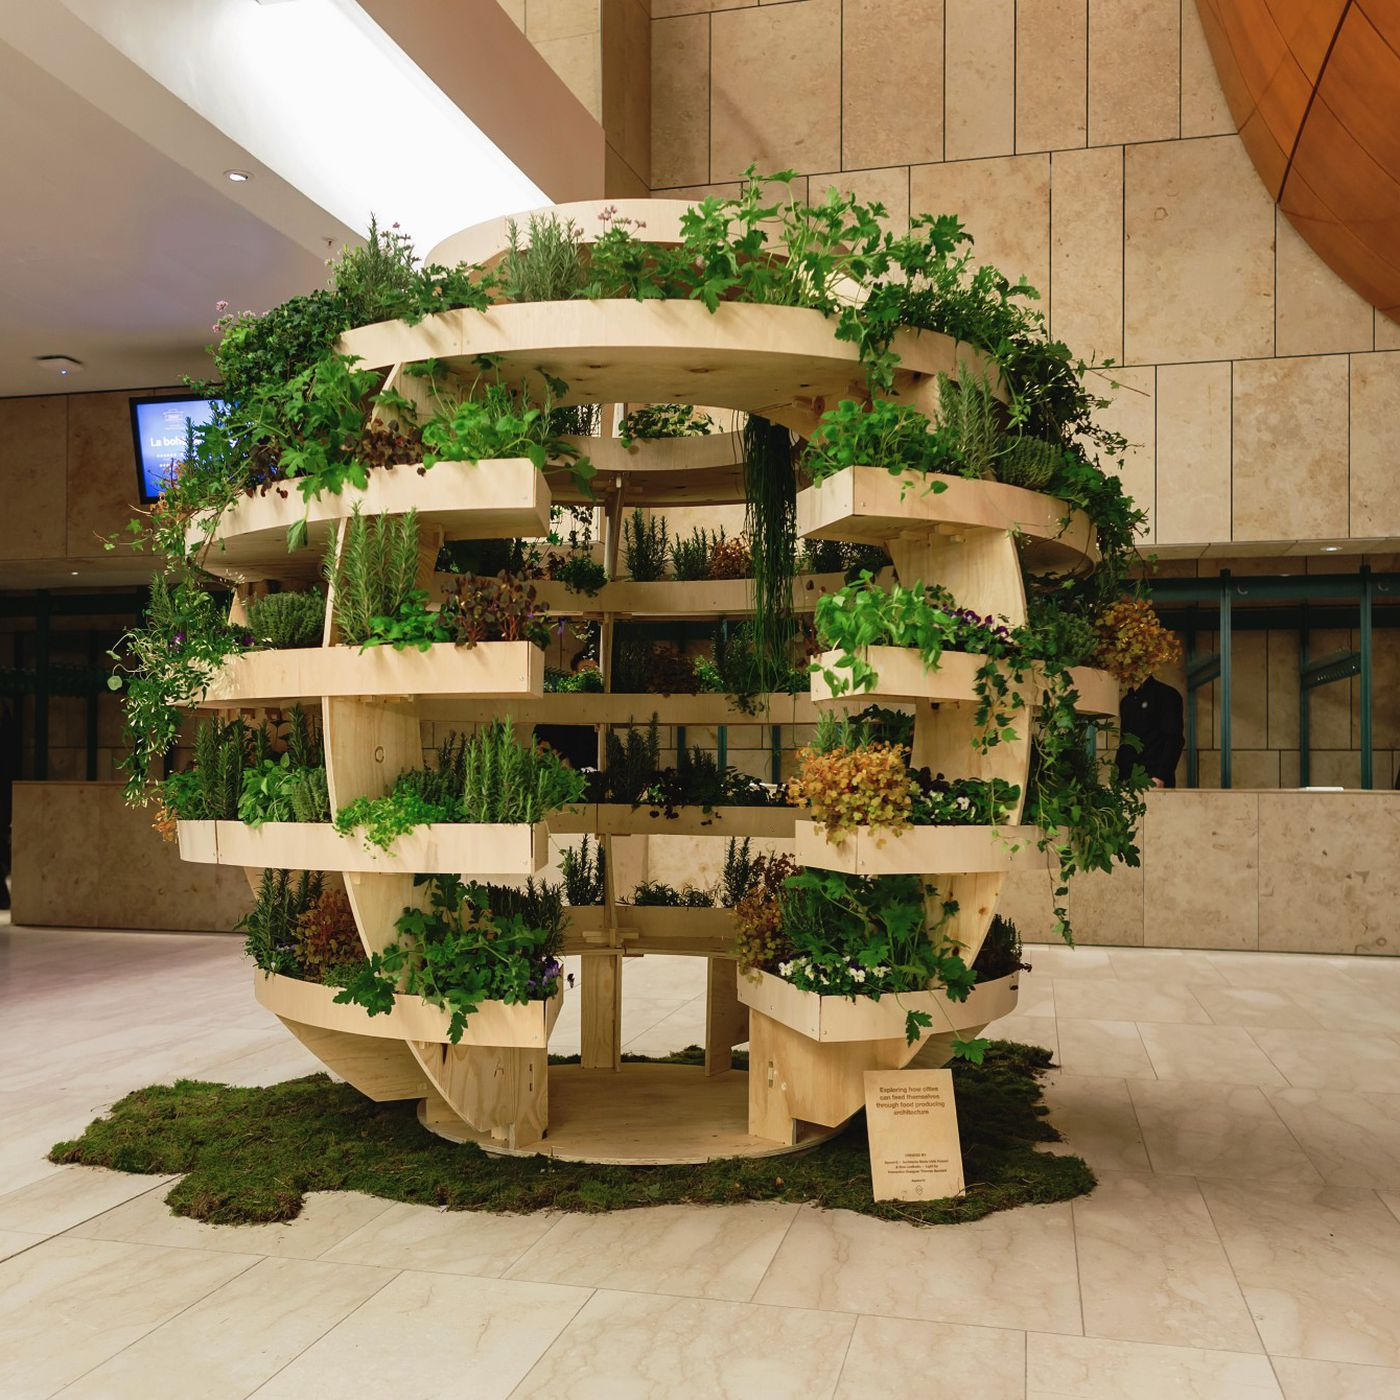 Ikea and Space3 are making urban gardening easier - Curbed